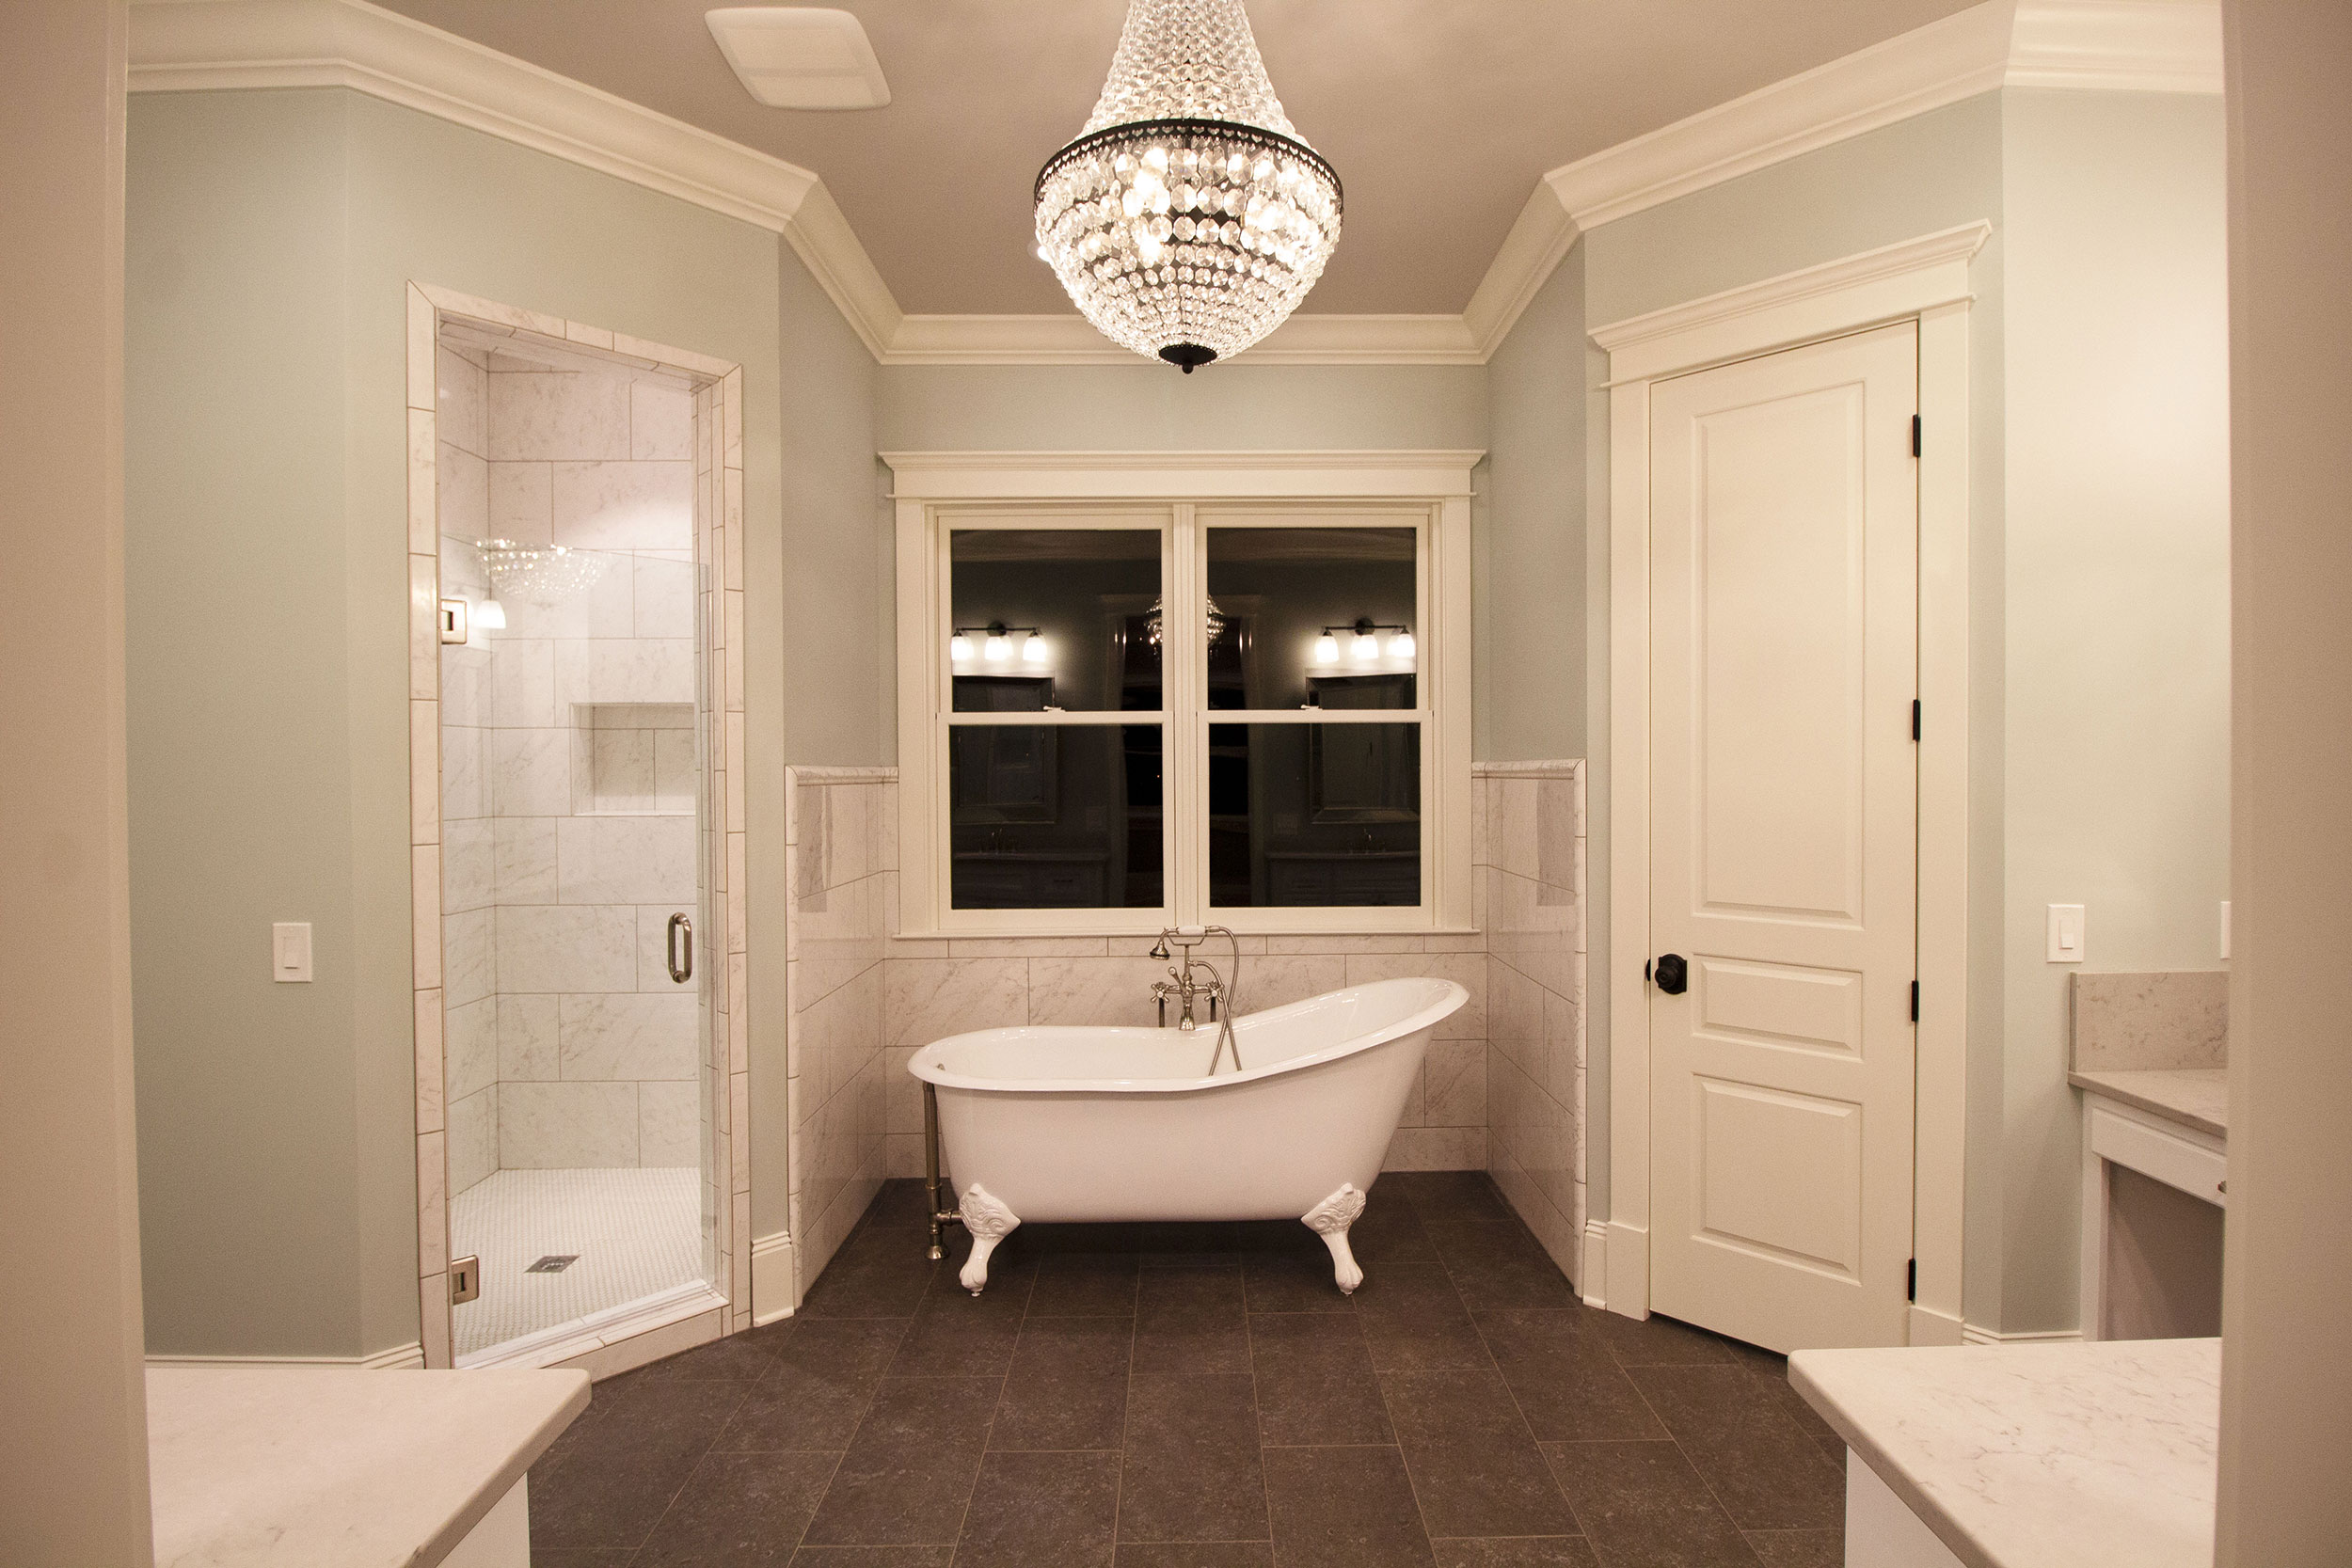 CopperRock Master Bath Design